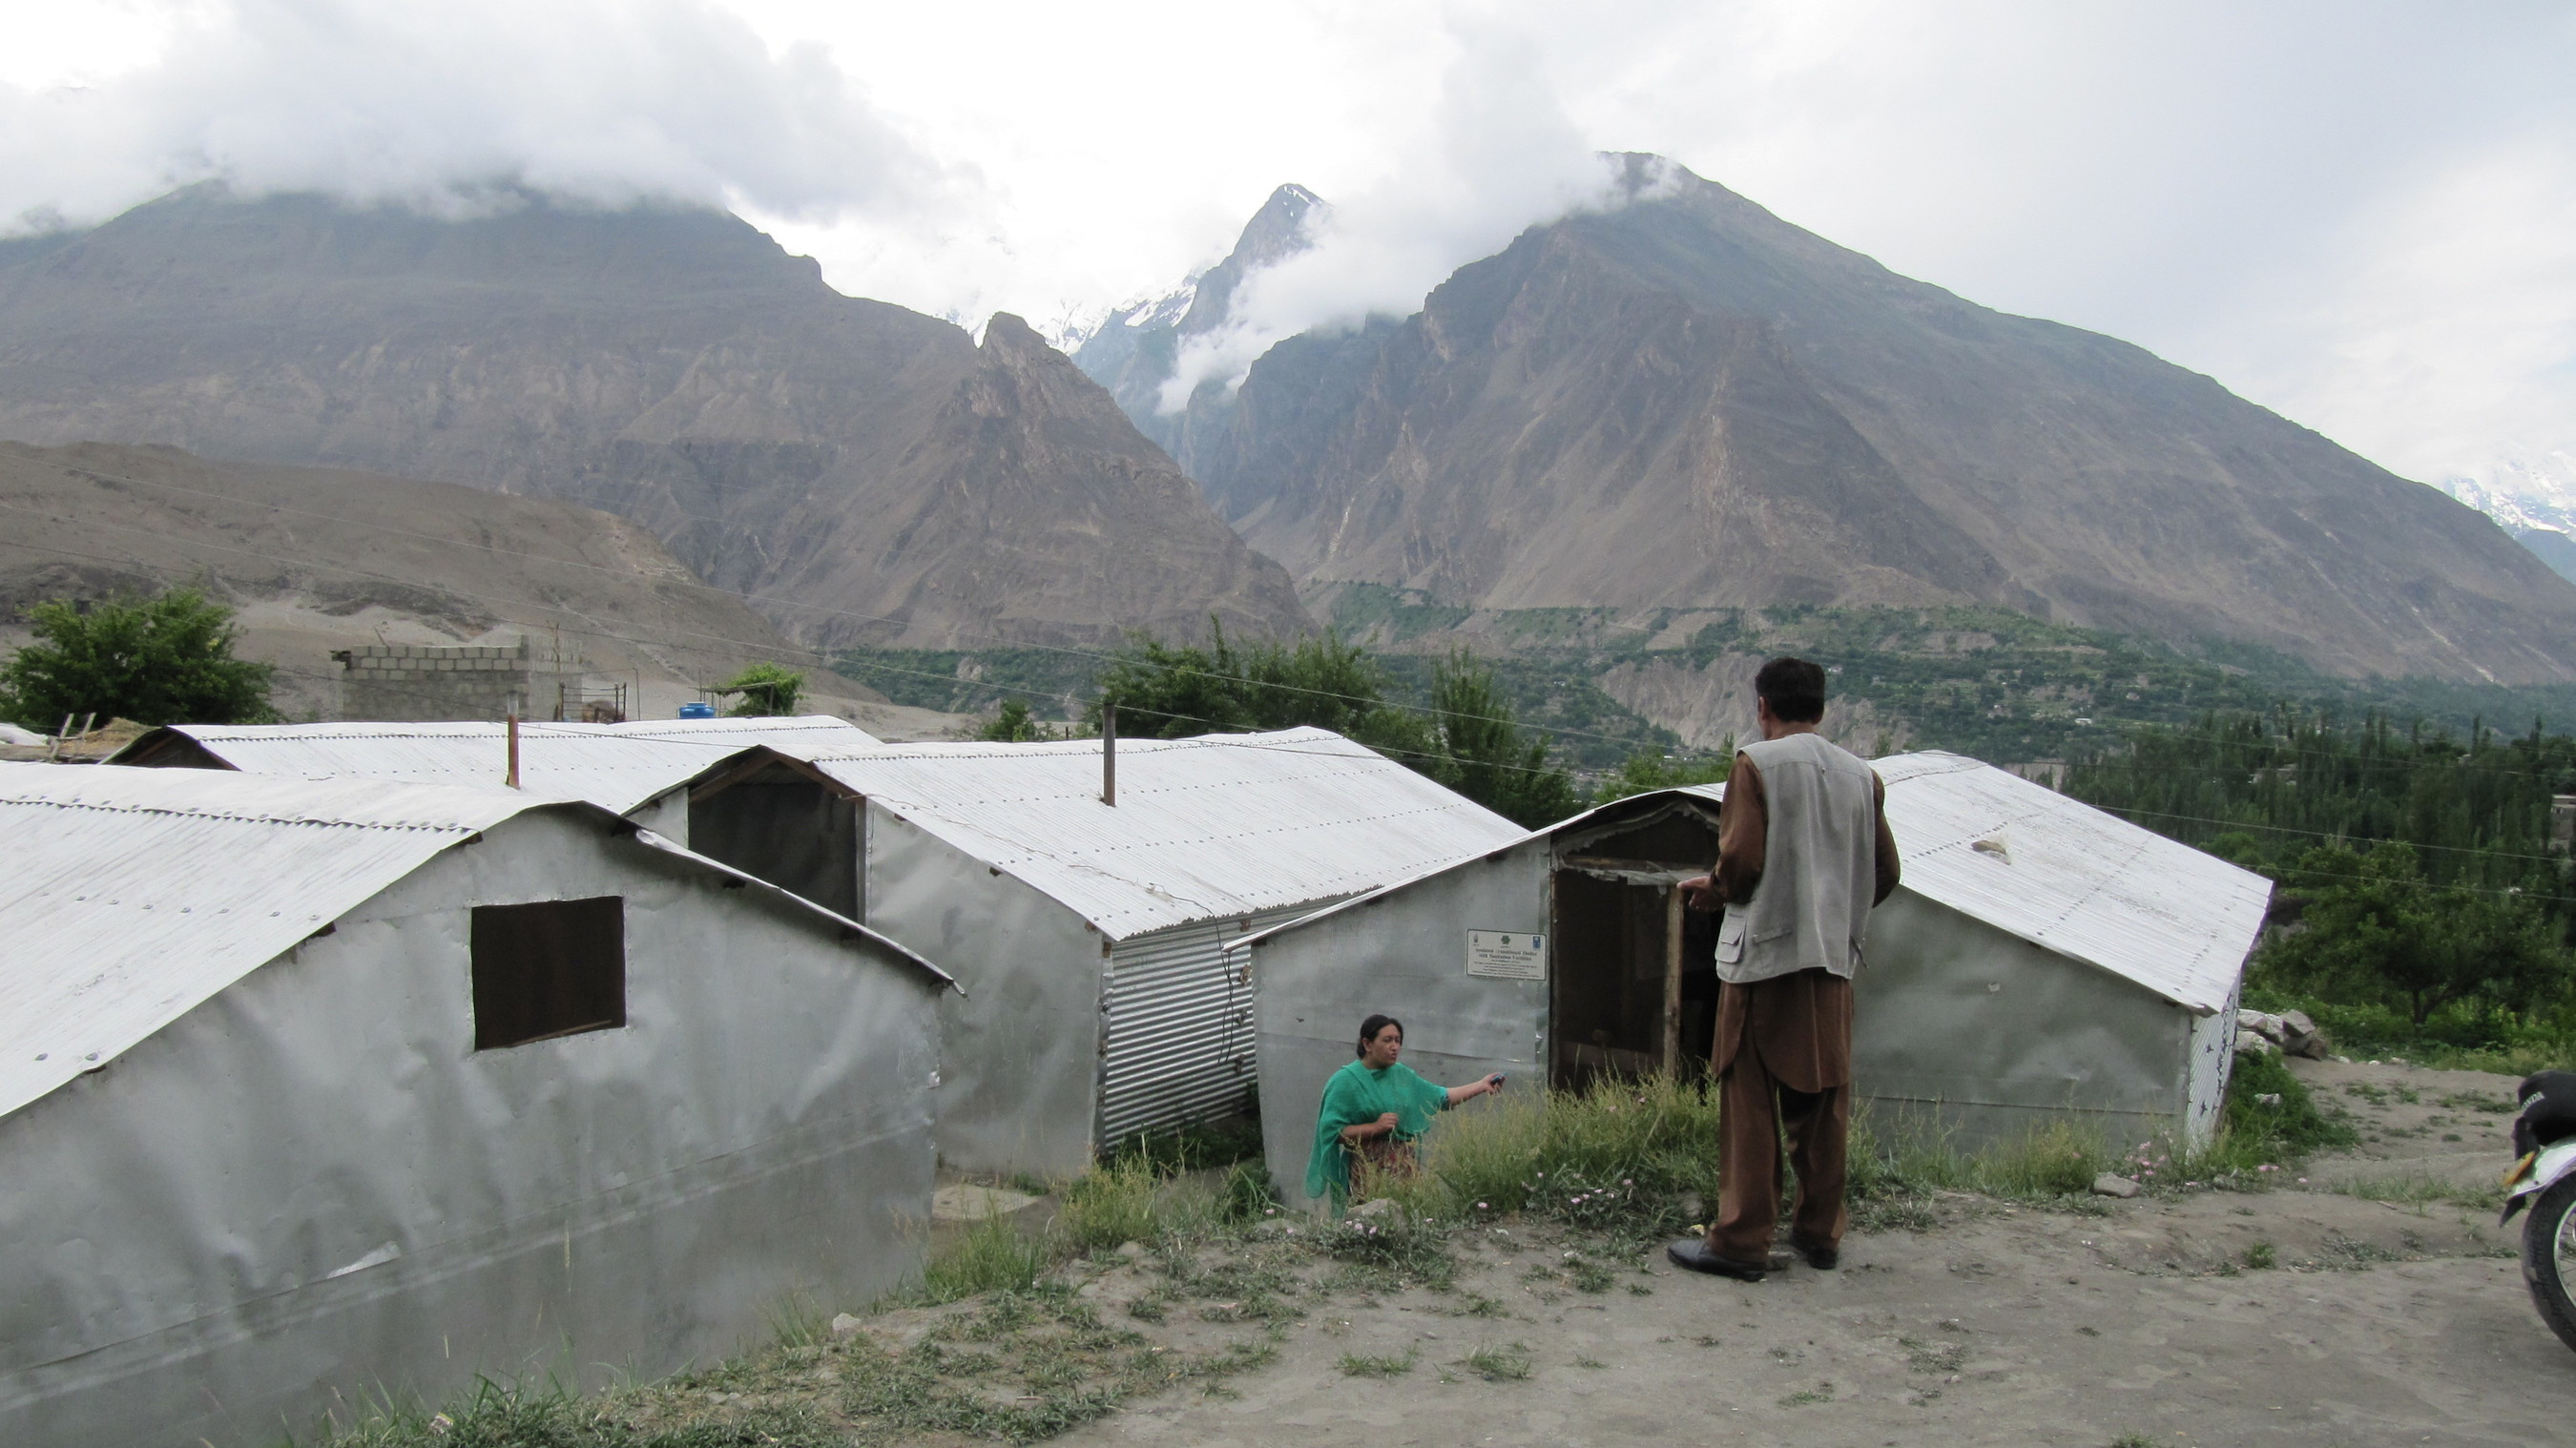 Since a major landslide left thousands homeless in the north of Pakistan in 2010, they have lived in temporary accommodation